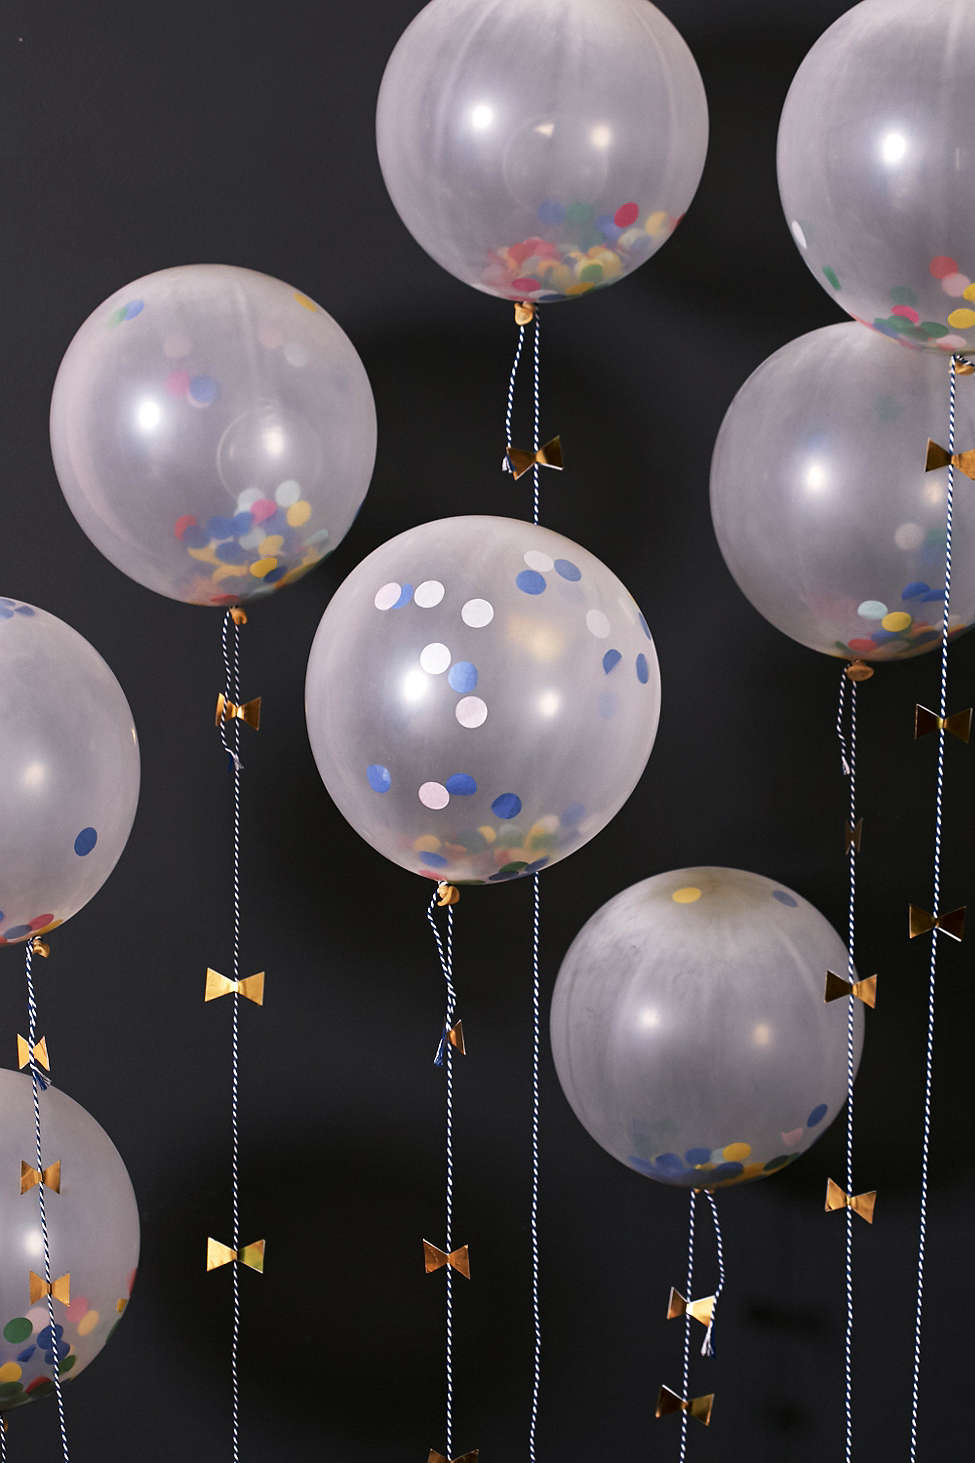 Confetti balloons from Urban Outfitters